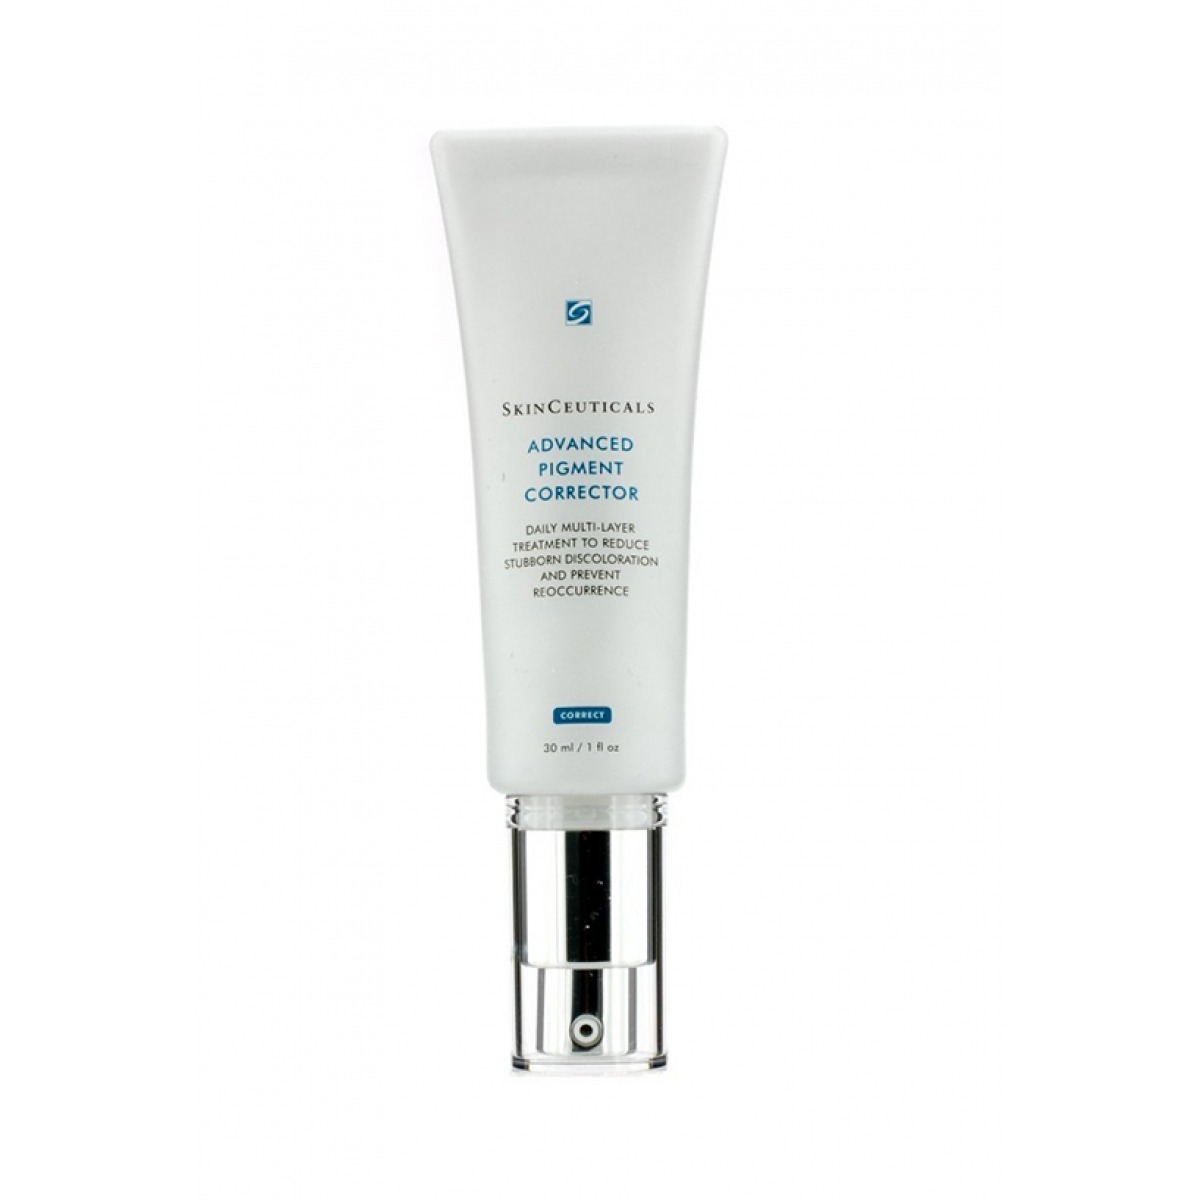 SKINCEUTICALS ADVANCE PIGMENT CORRECTOR 30 ML.